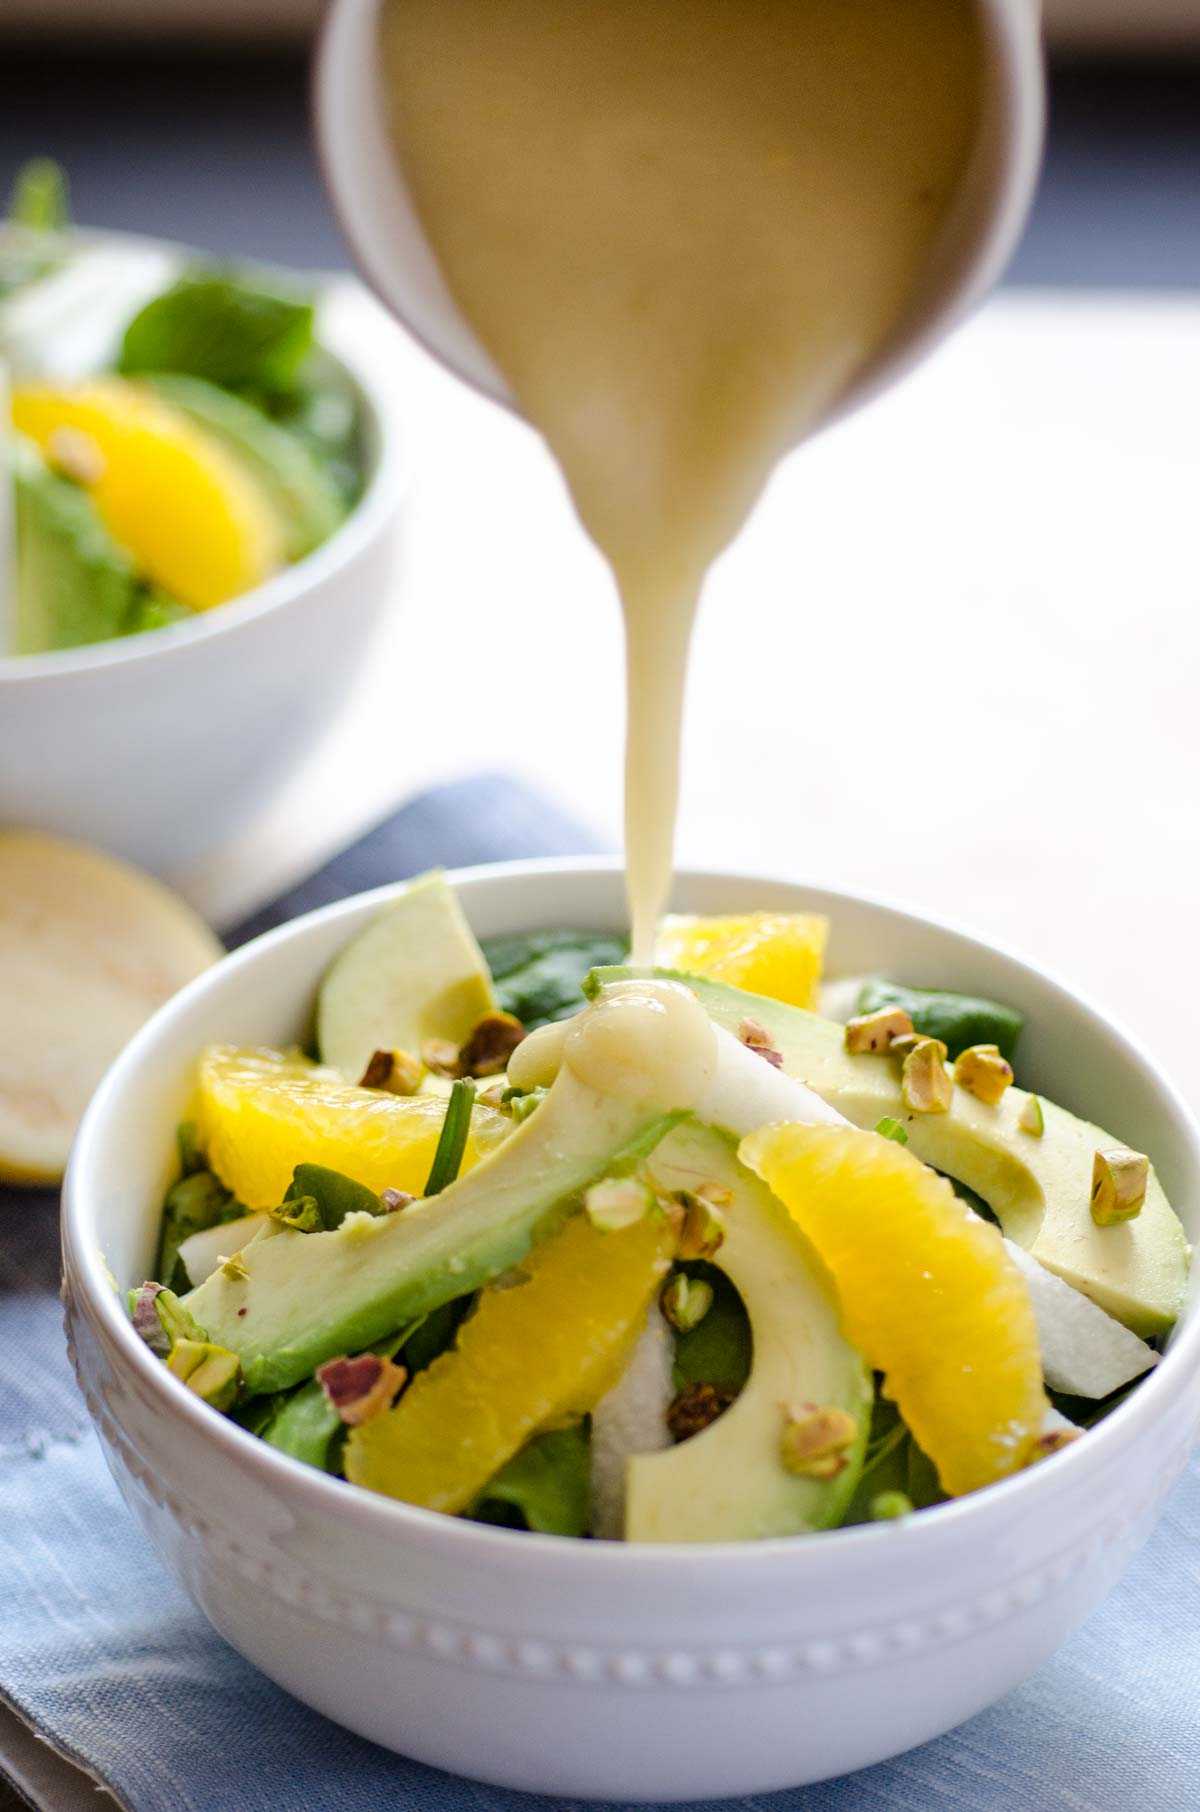 This Spinach Avocado Jicama Salad combines baby spinach, creamy avocado, jicama, orange, and pistachios tossed with a guava dressing.